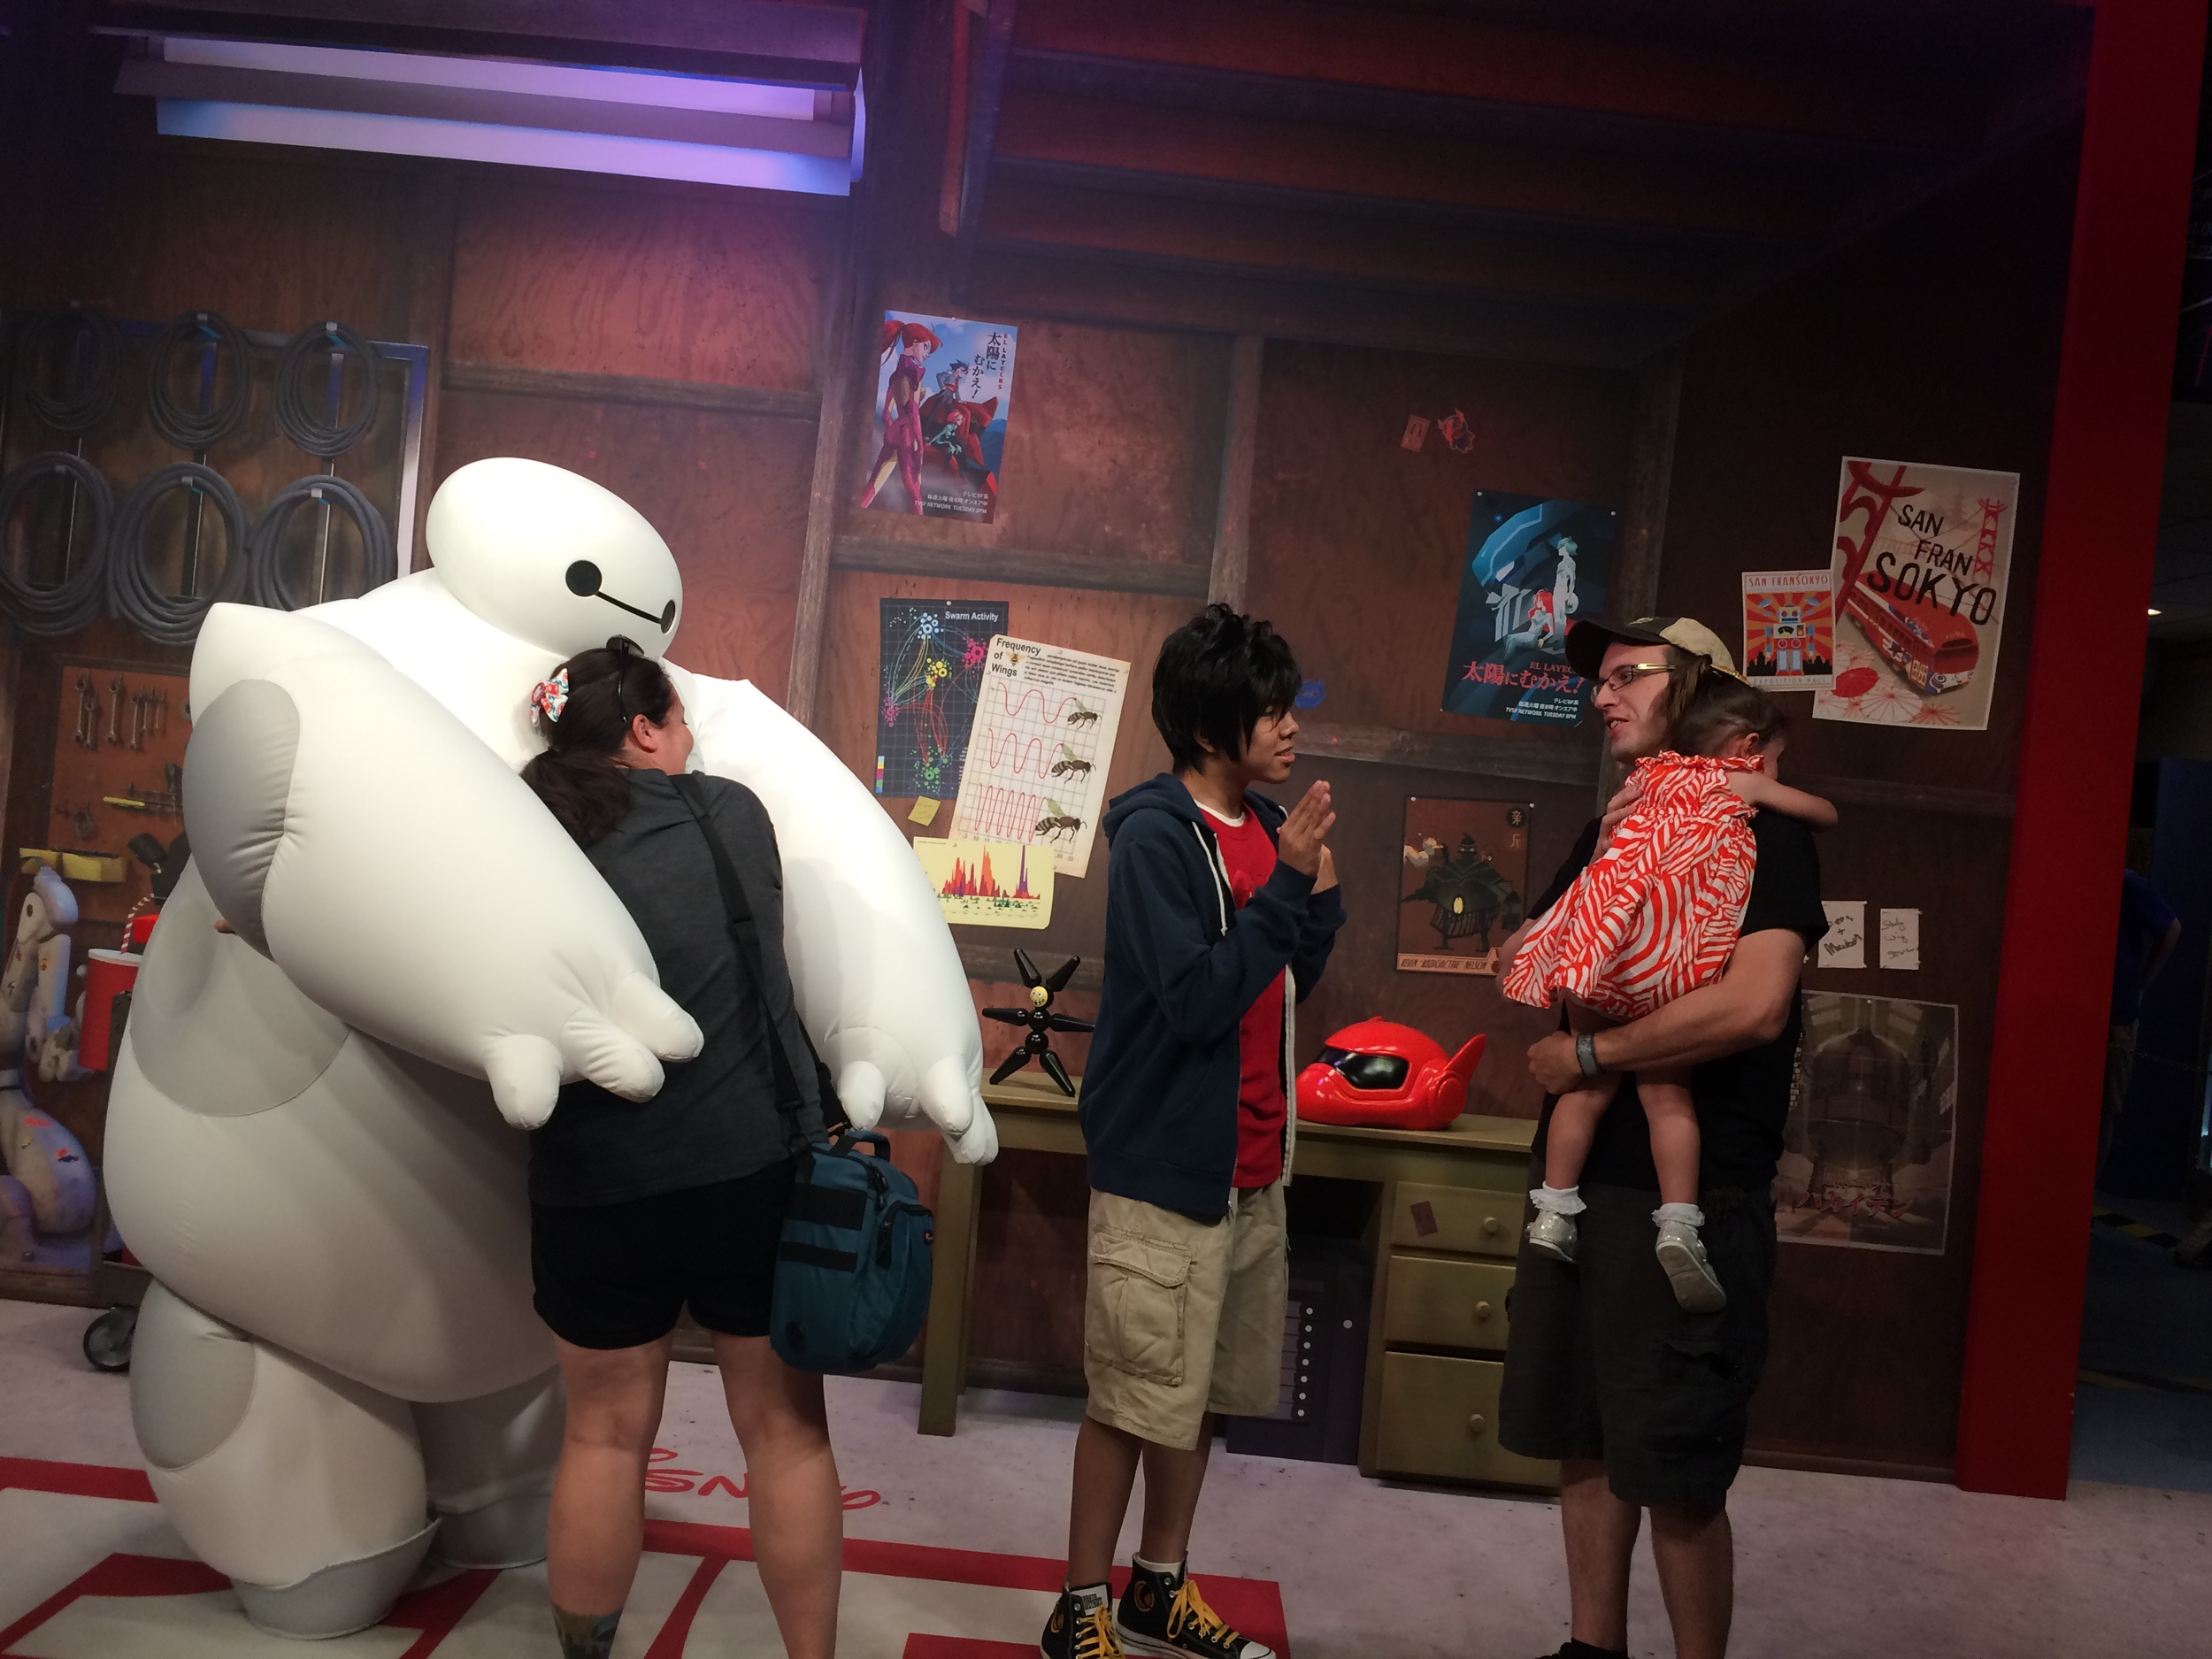 Baymax is amazing. And Hiro tried, bless him.